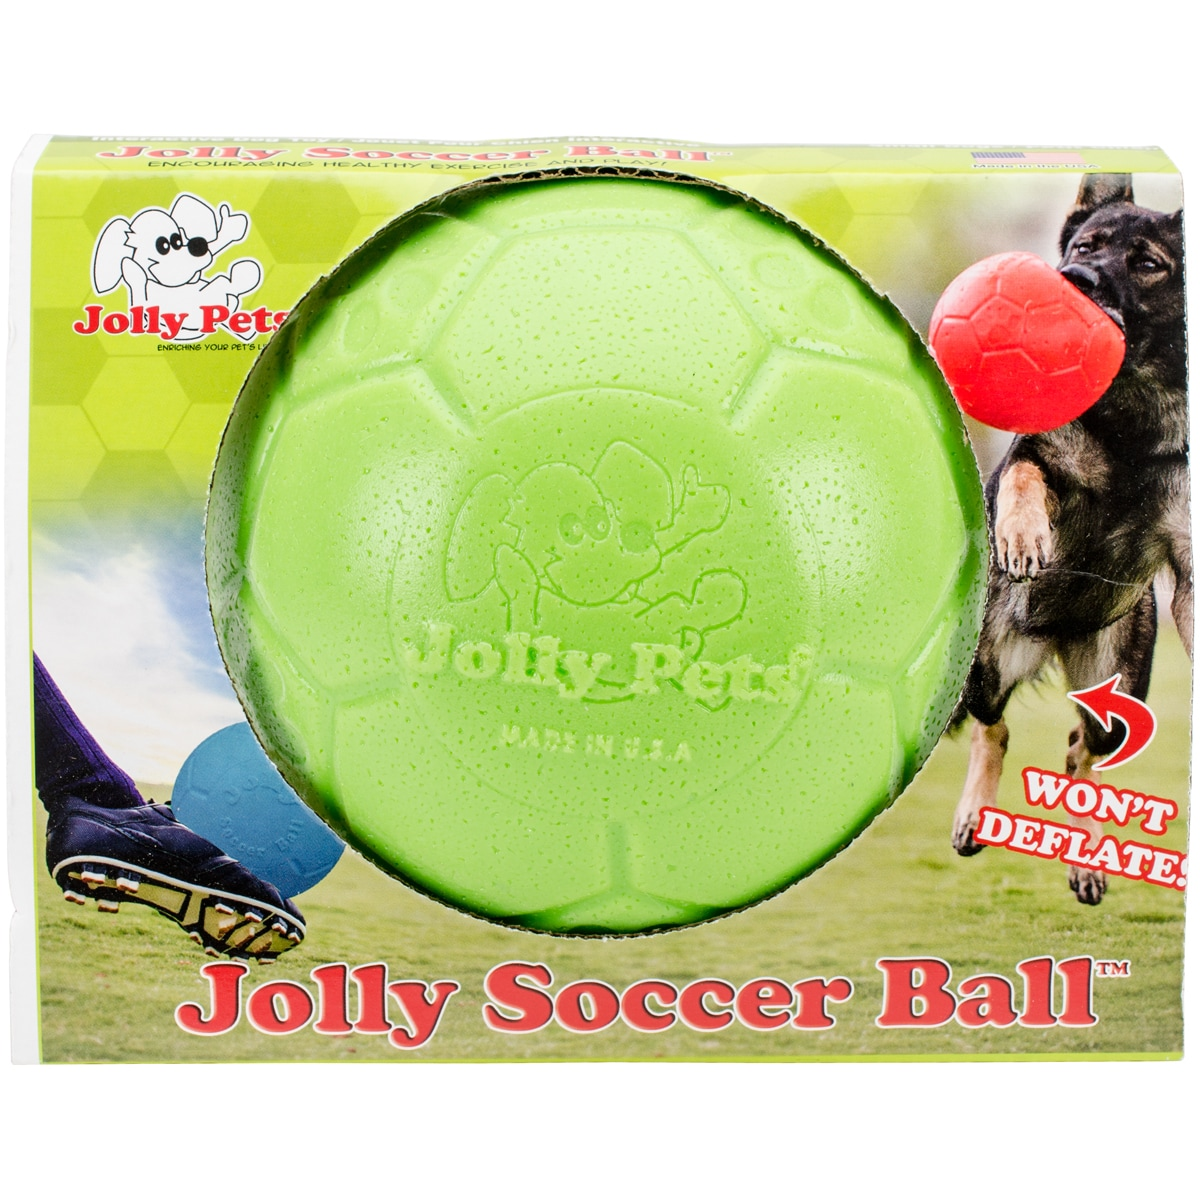 Jolly Soccer Ball Dog Toy (Green Apple 6 in.), Multicolor